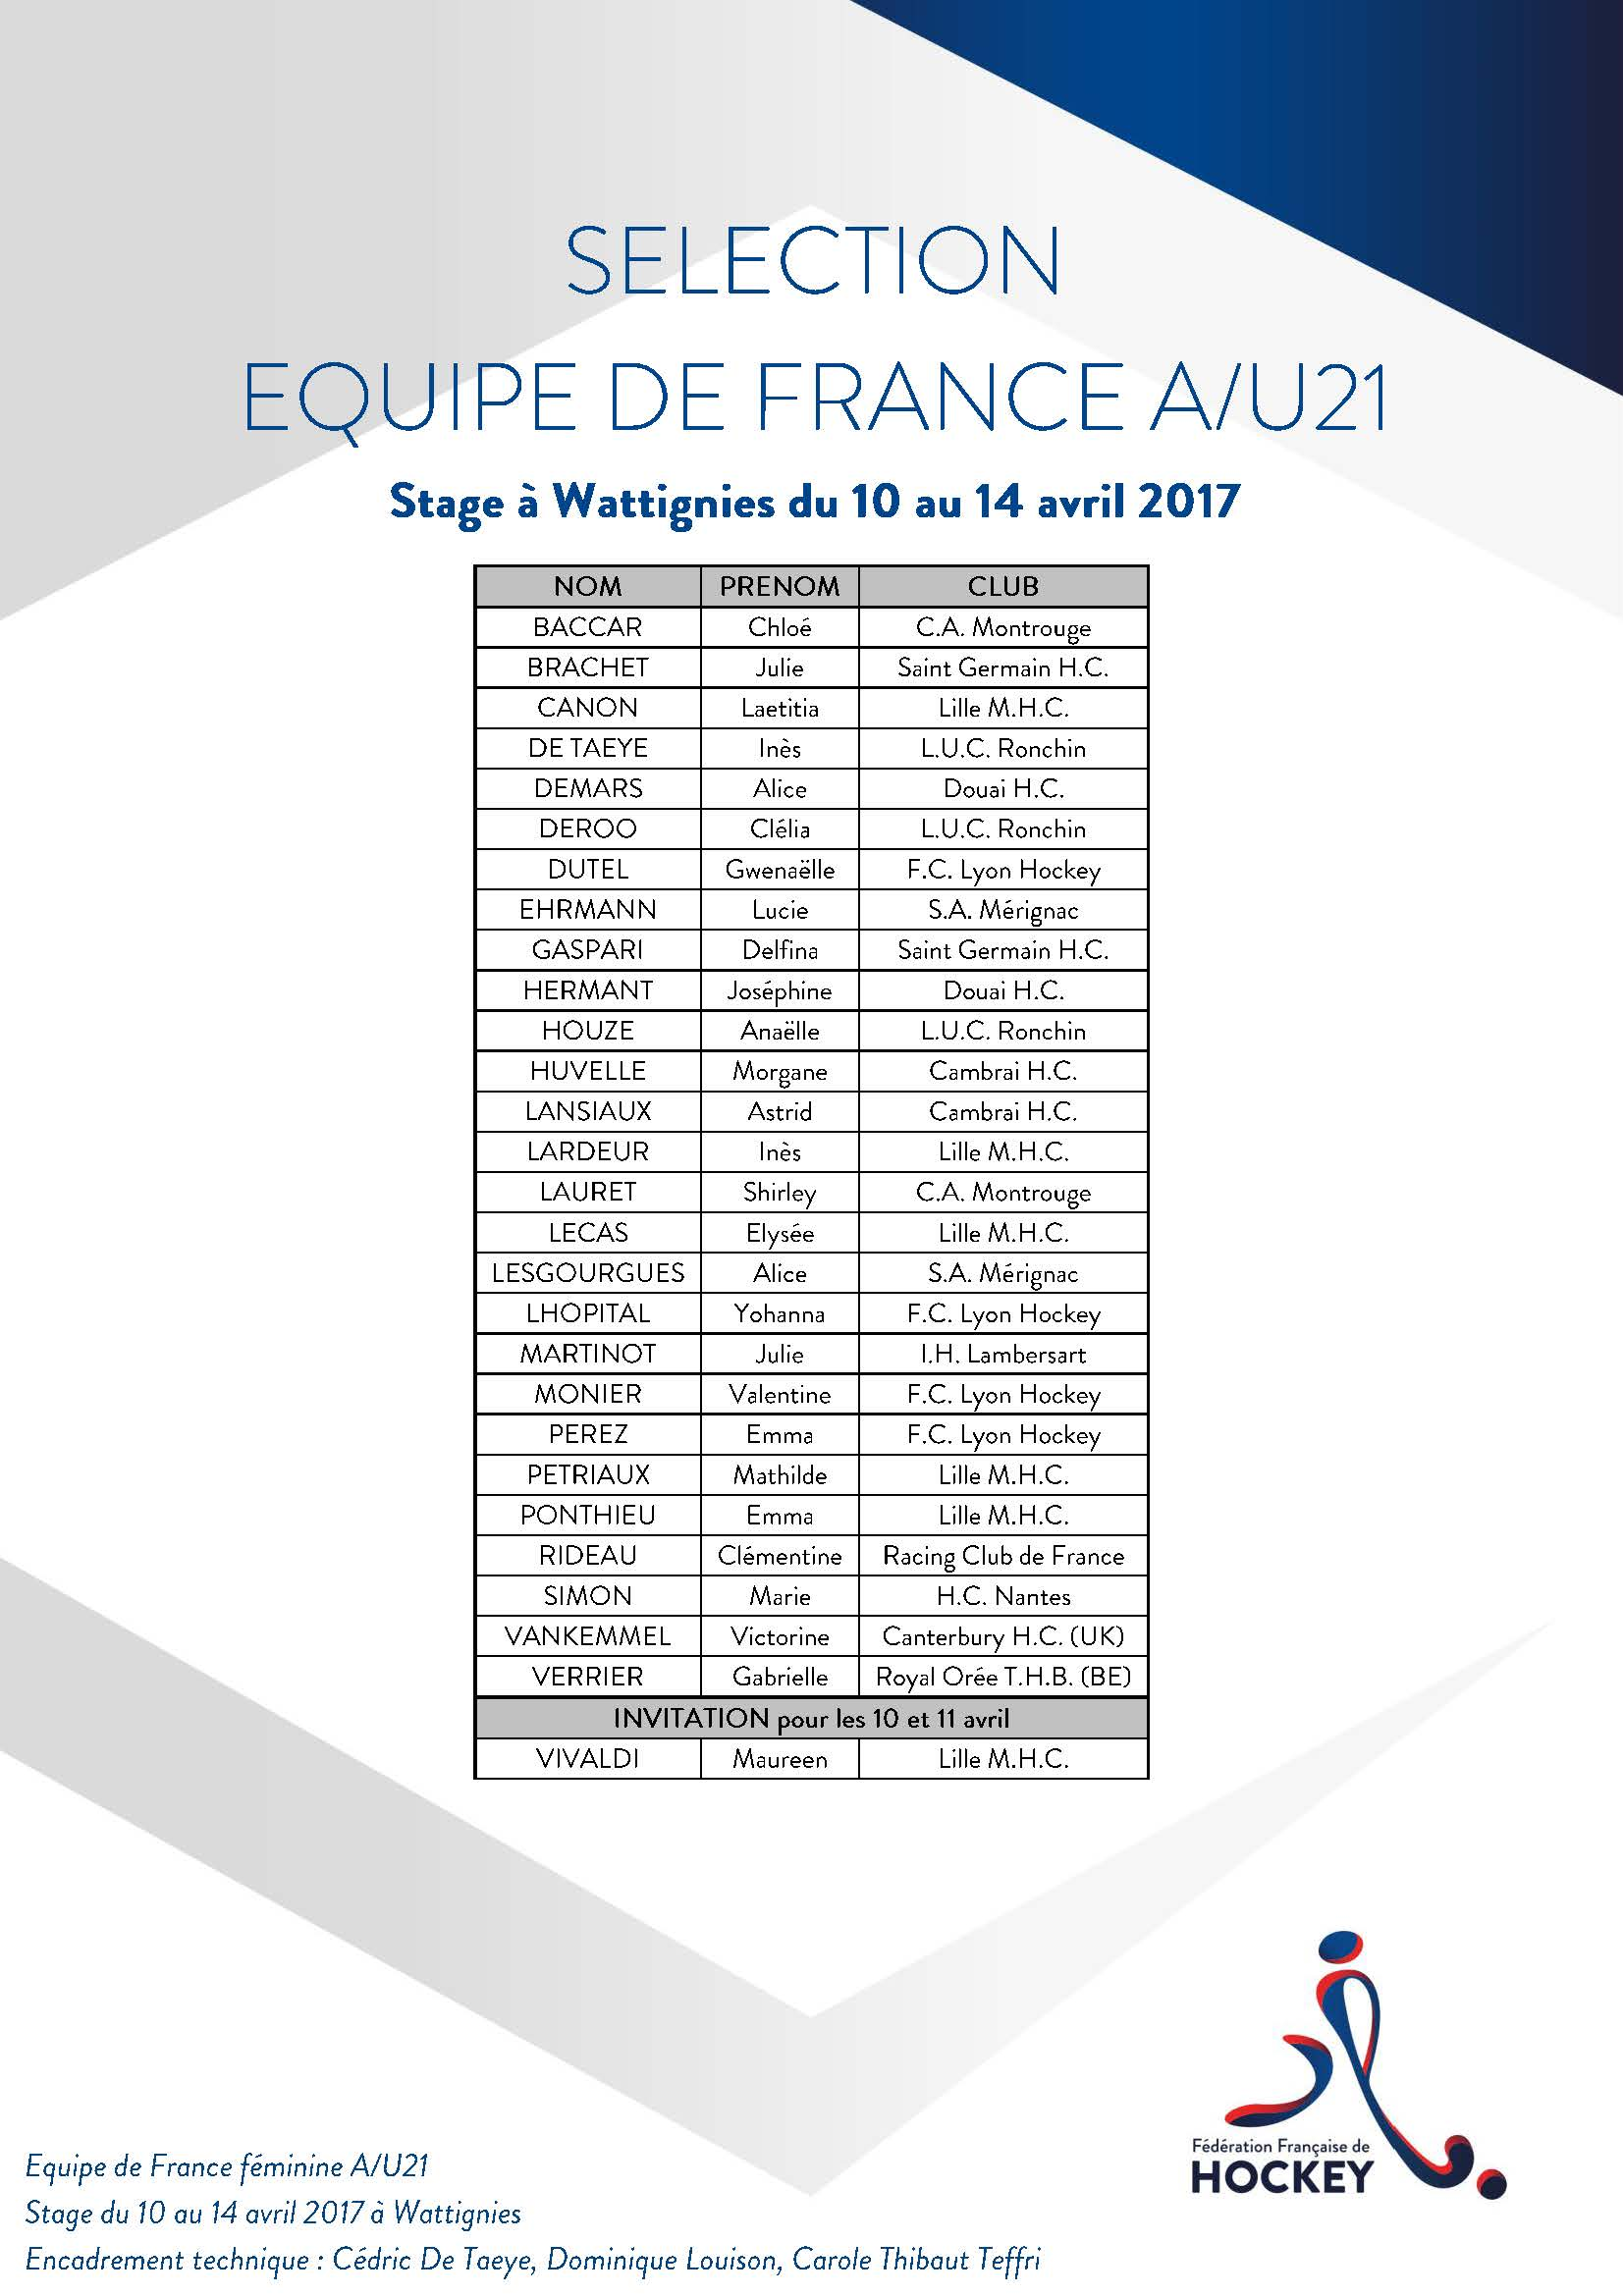 SELECTION EQUIPE DE FRANCE - Stage Wattignies 10 au 14 avril 2017.jpg